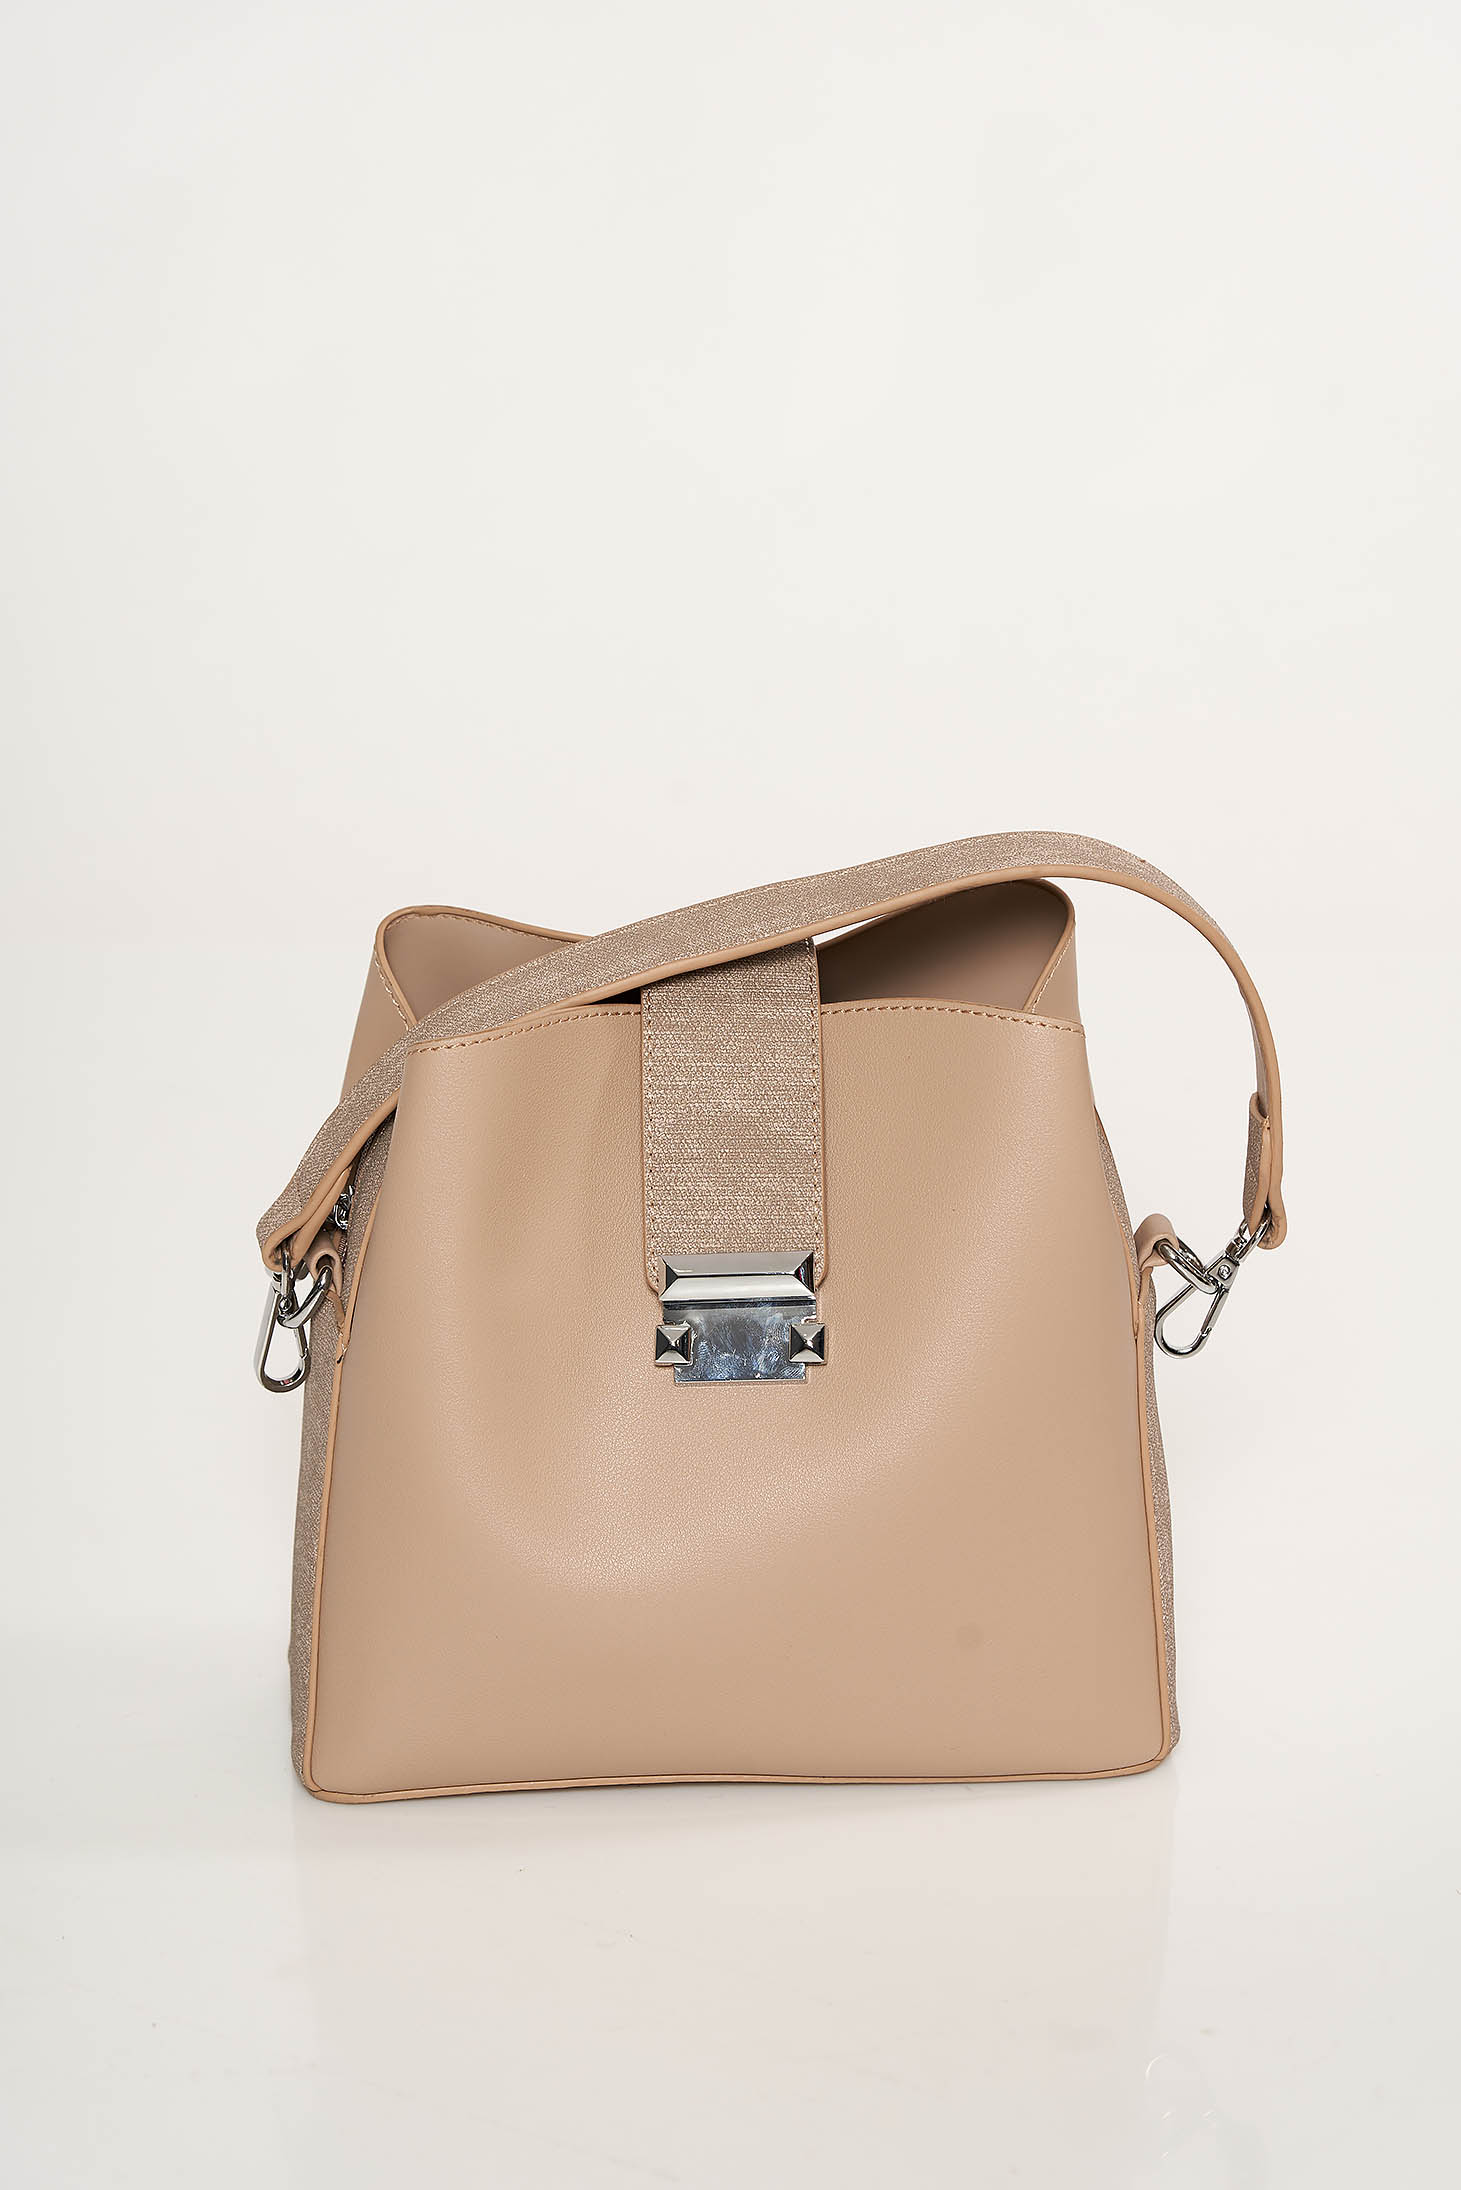 Cream bag from ecological leather metallic buckle